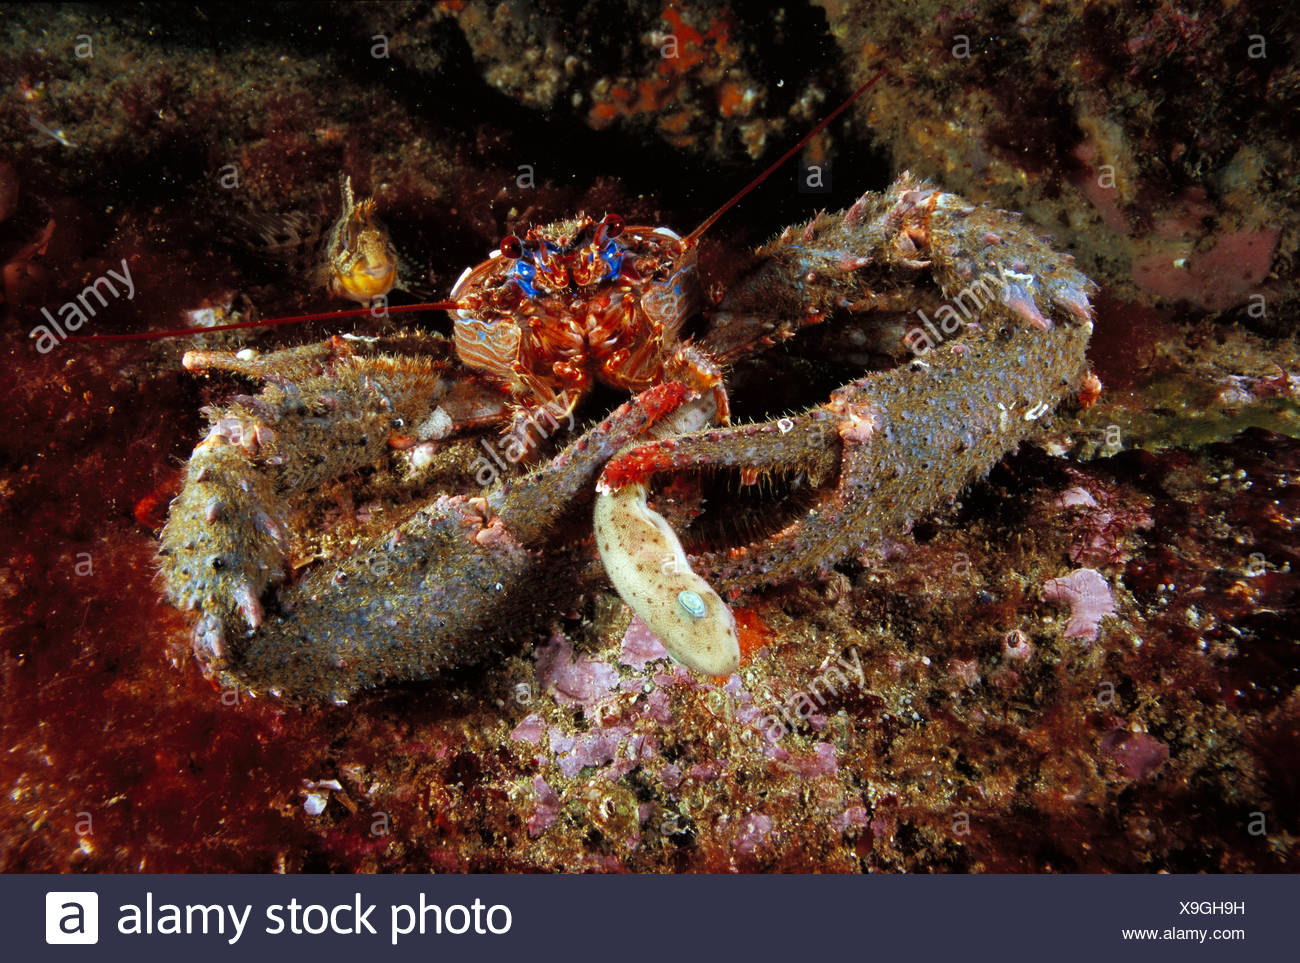 Eastern Atlantic Galicia Spain Spinous squat lobster Galathea strigosa devouring a young Common dogfish - Stock Image